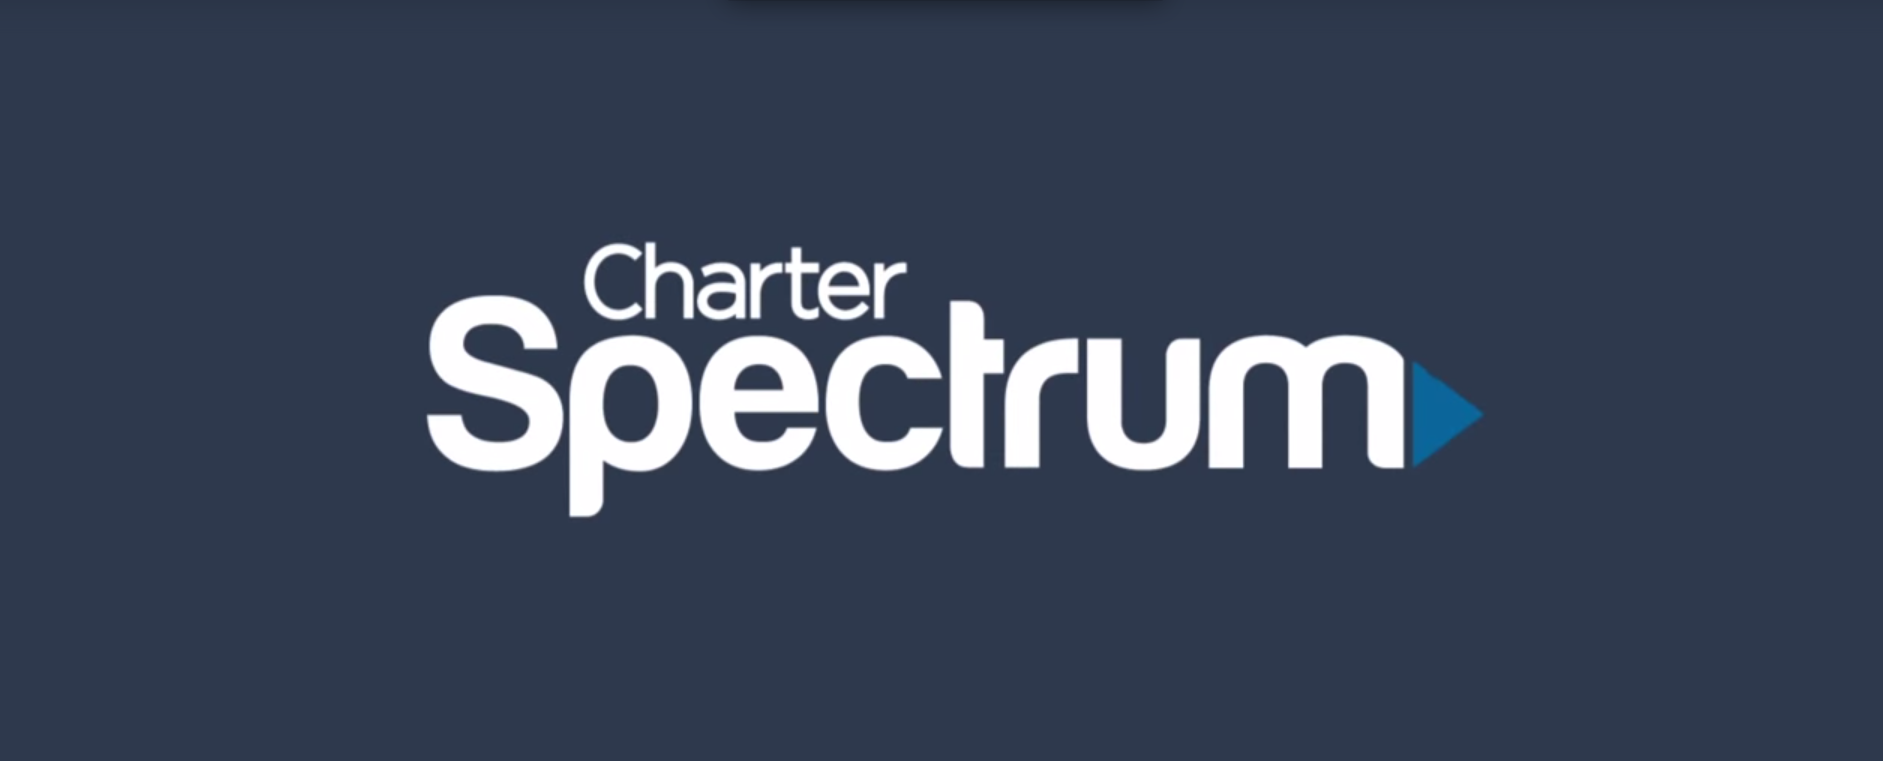 charter closes time warner cable bright house deal what s next for customers rowan free press. Black Bedroom Furniture Sets. Home Design Ideas